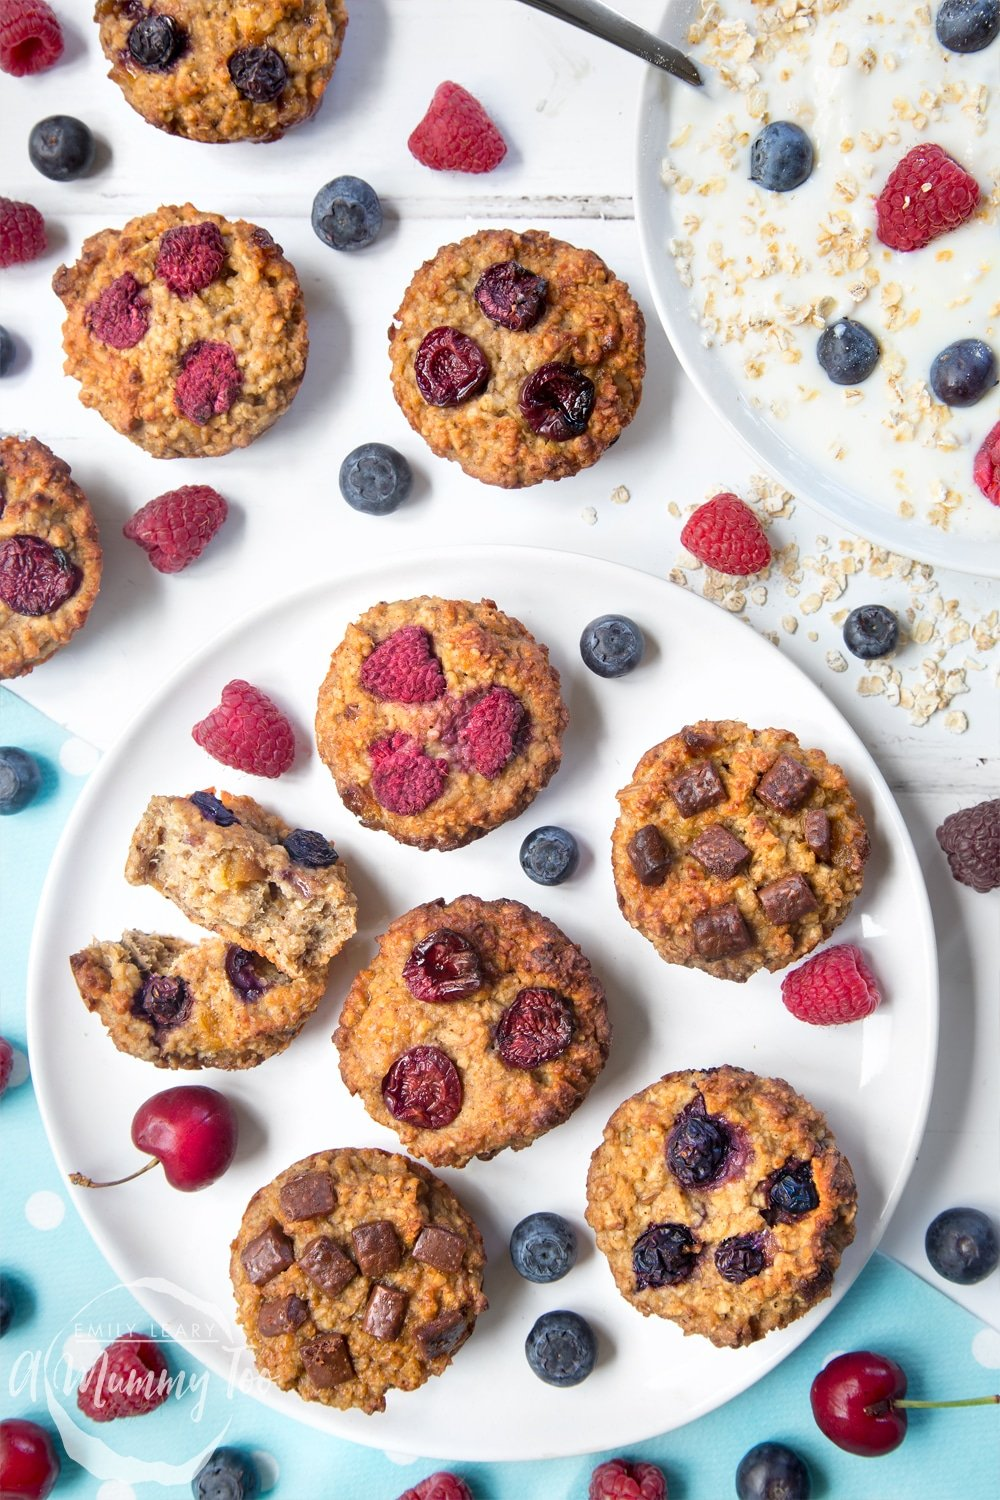 Yoghurty summer fruit breakfast muffins surrounded by raspberries, blueberries and yoghurt. Find out how to make this delicious, healthier breakfast treat in my recipe!